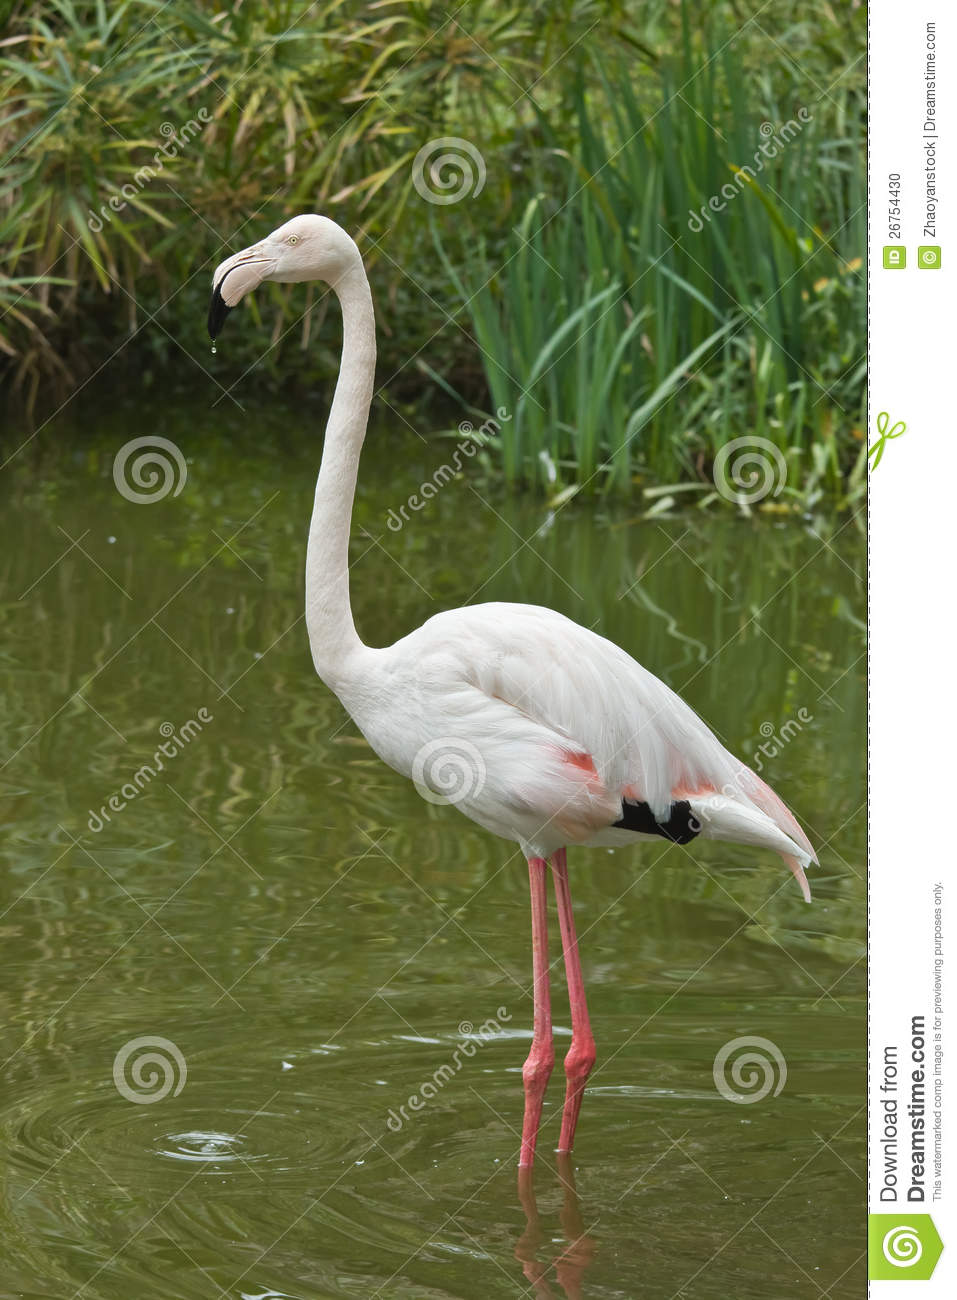 The White Flamingo: Jack the Ripper in South East Asia and millions of other books are available for instant access. view Kindle eBook | view Audible audiobook Enter your mobile number or email address below and we'll send you a link to download the free Kindle shopnow-ahoqsxpv.gas: